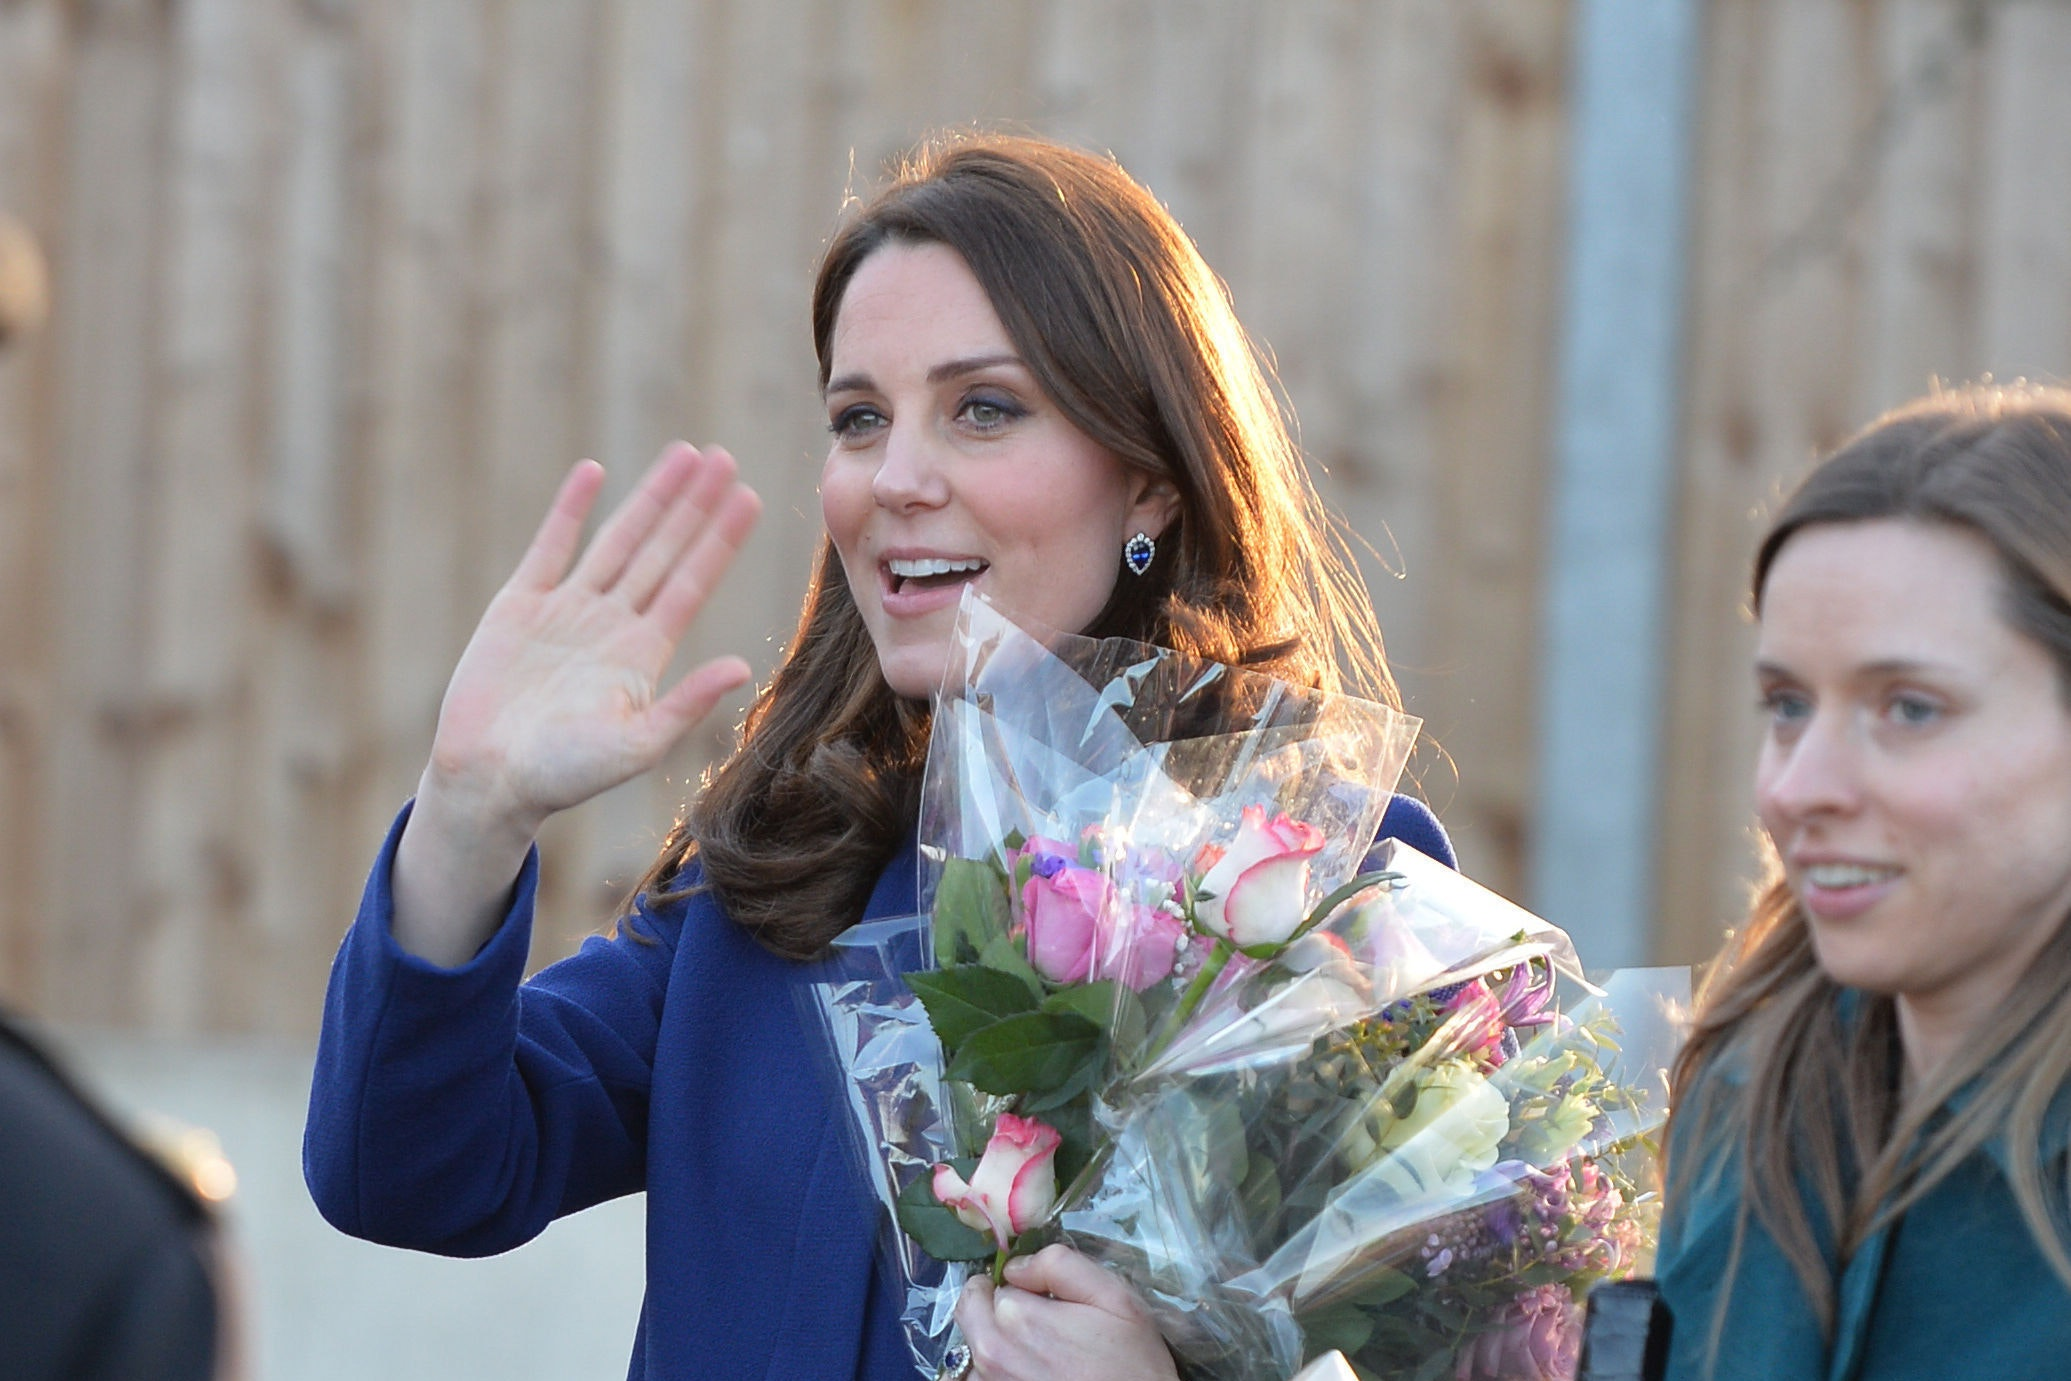 The Duchess of Cambridge leaves after visiting an Action on Addiction treatment centre in Wickford, Essex, which helps people with addictions.